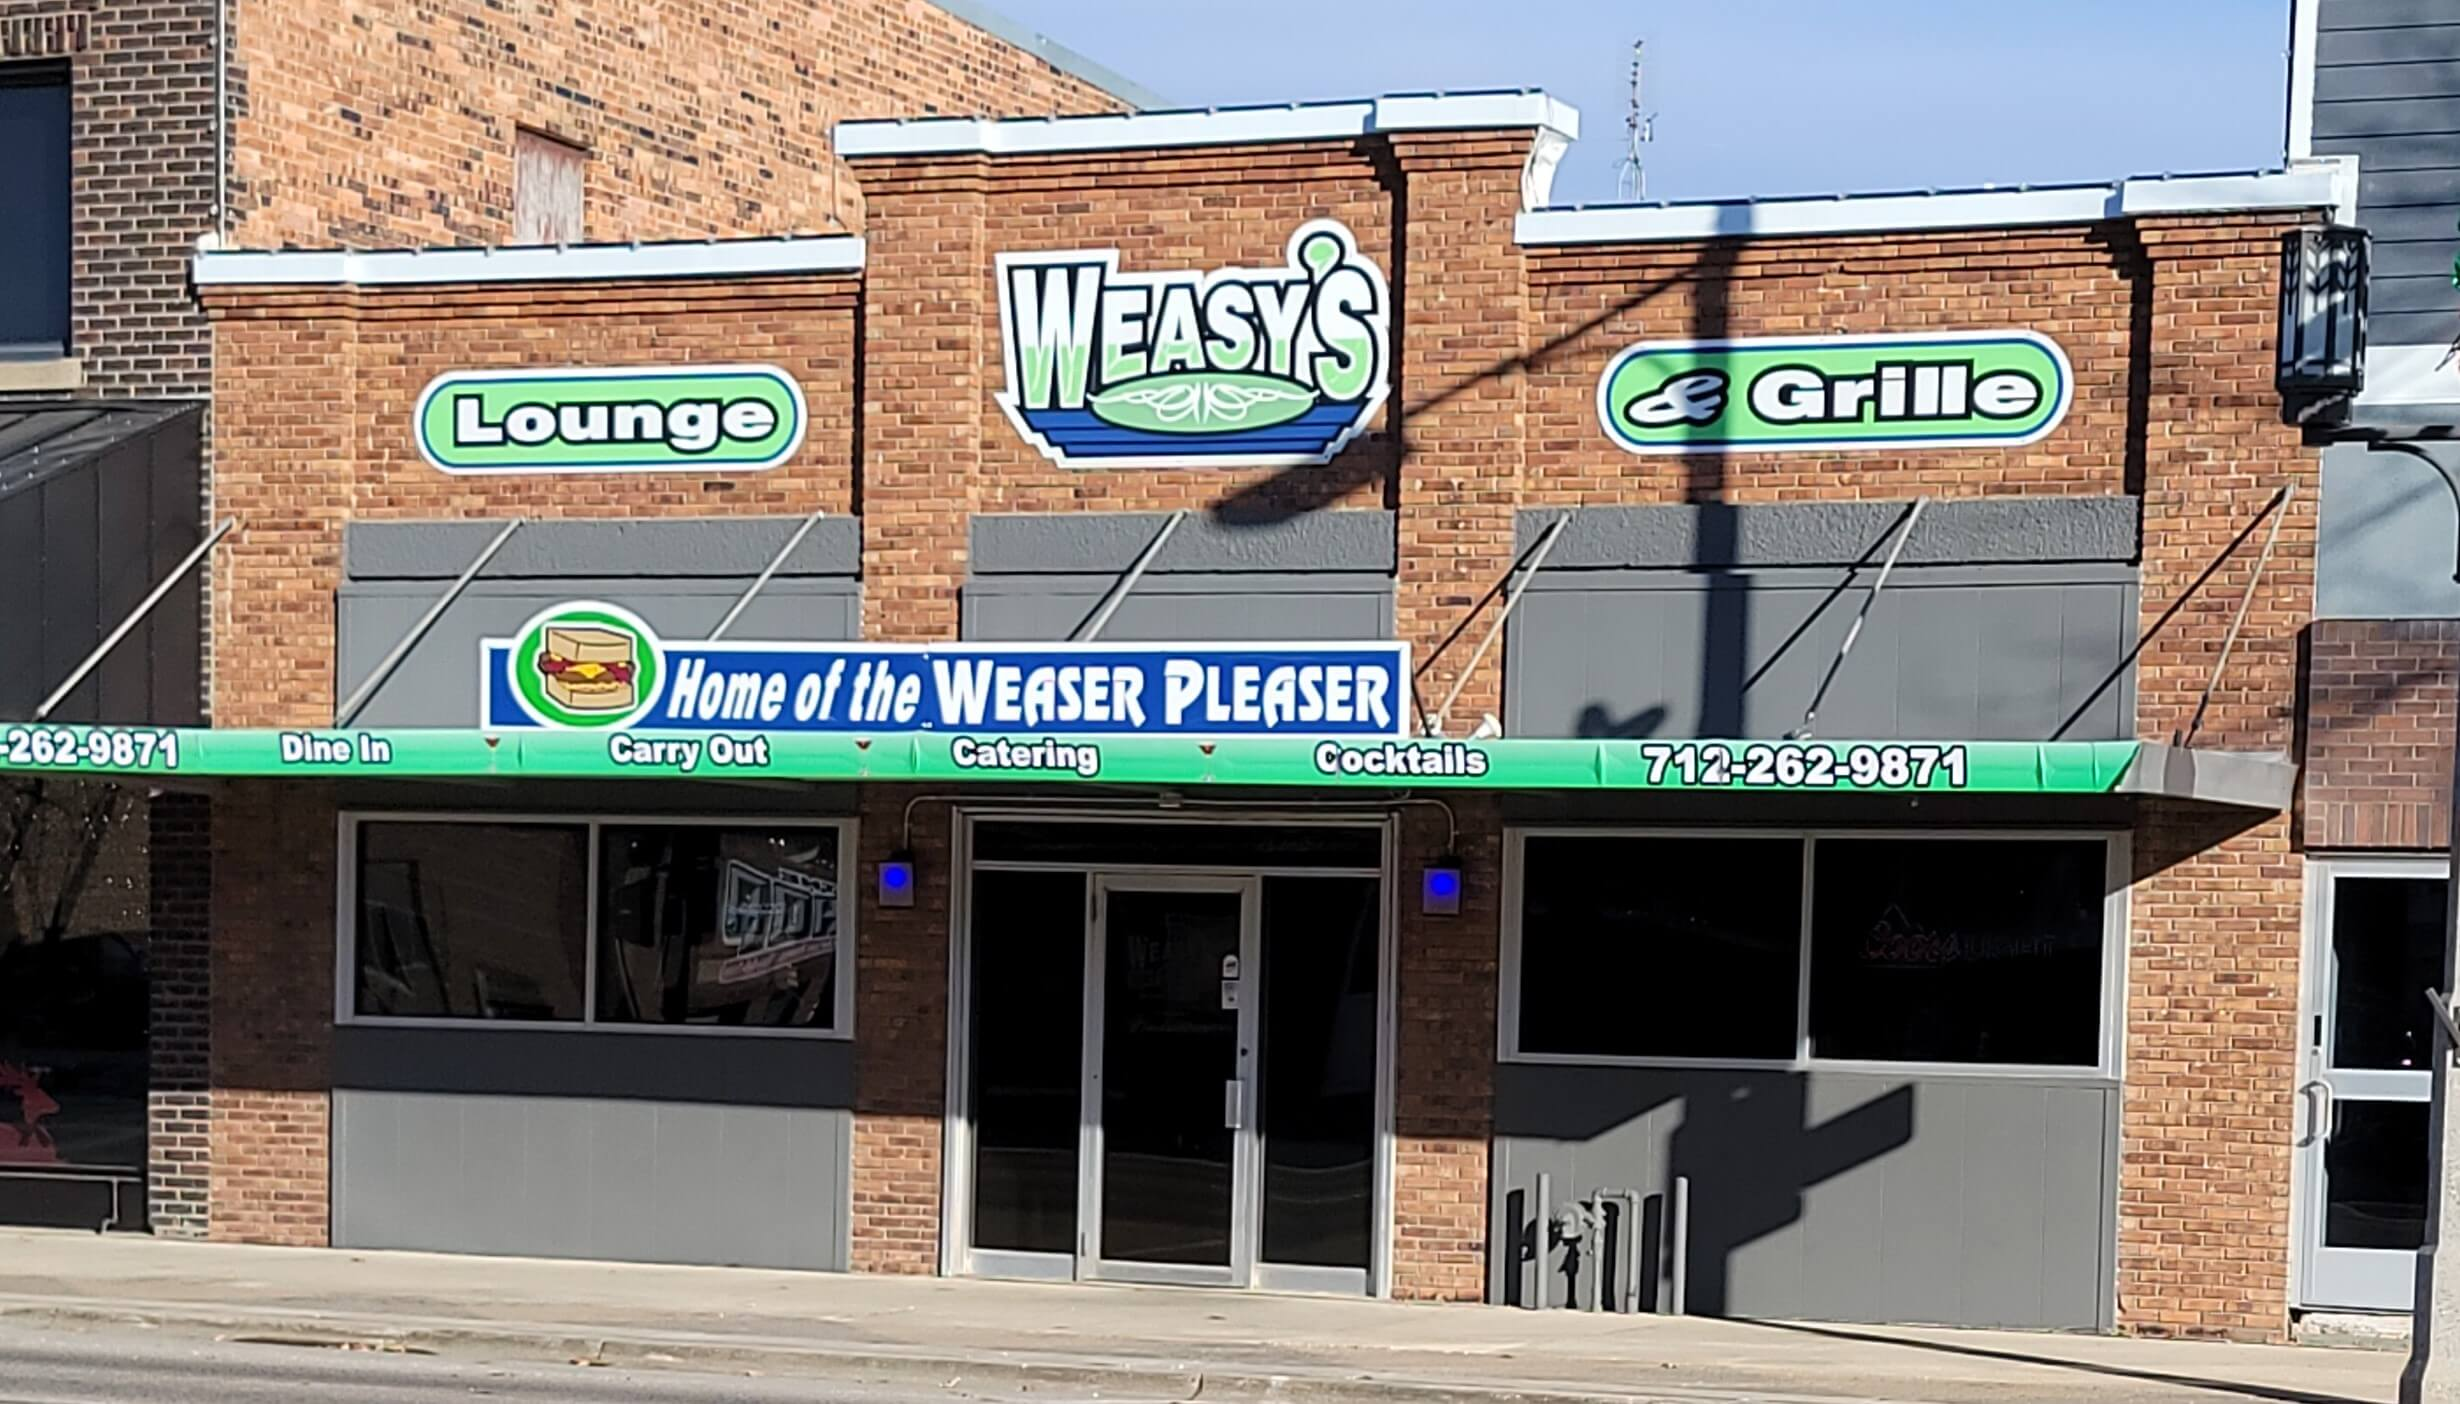 Weasy's Online Ordering Now Available!